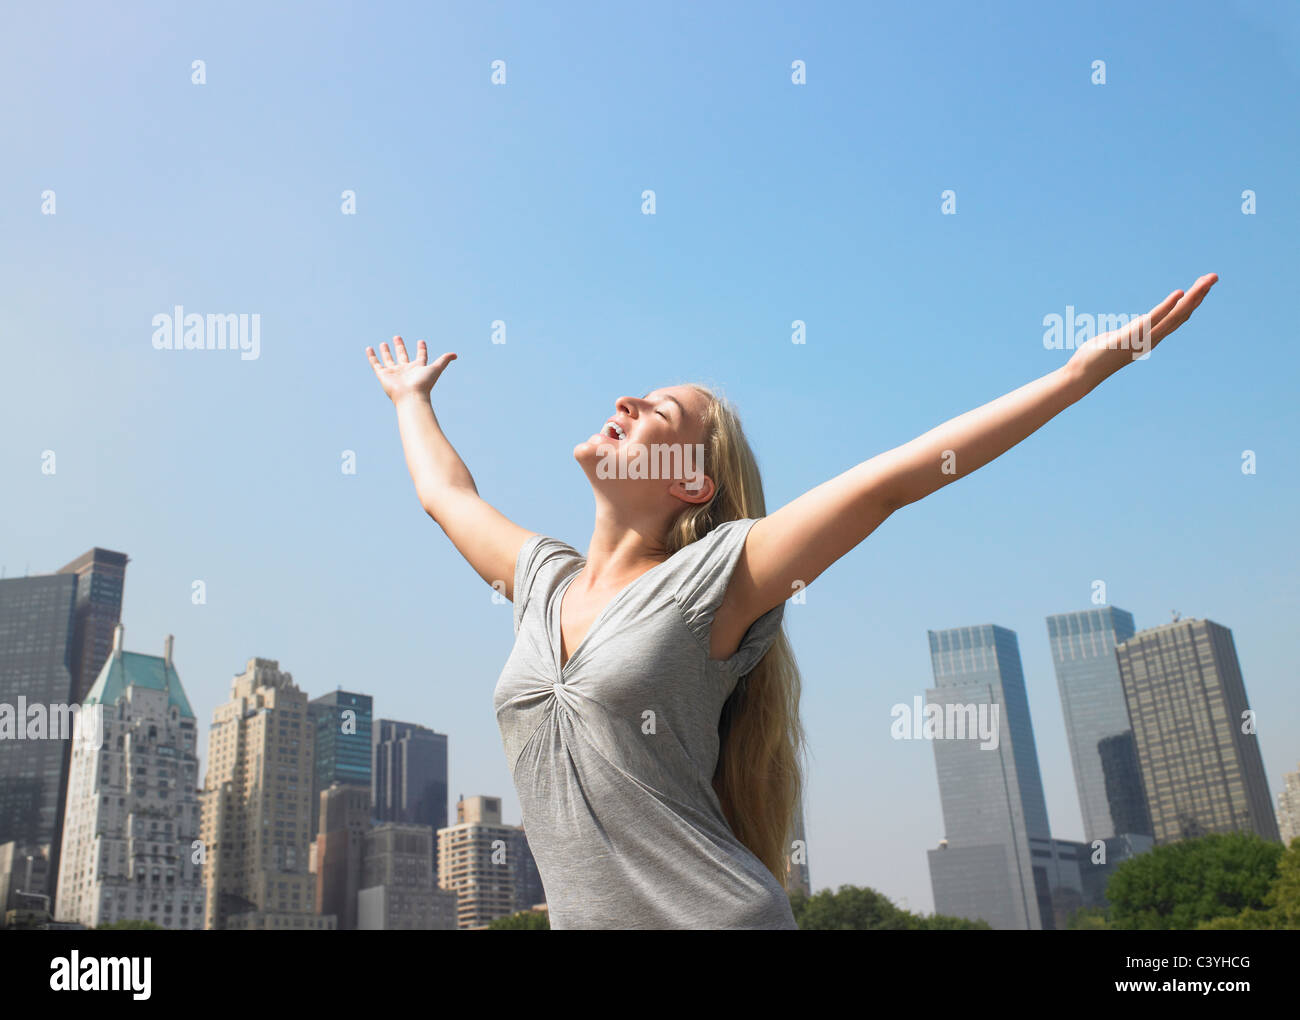 Woman enjoying the breeze on a hot day - Stock Image